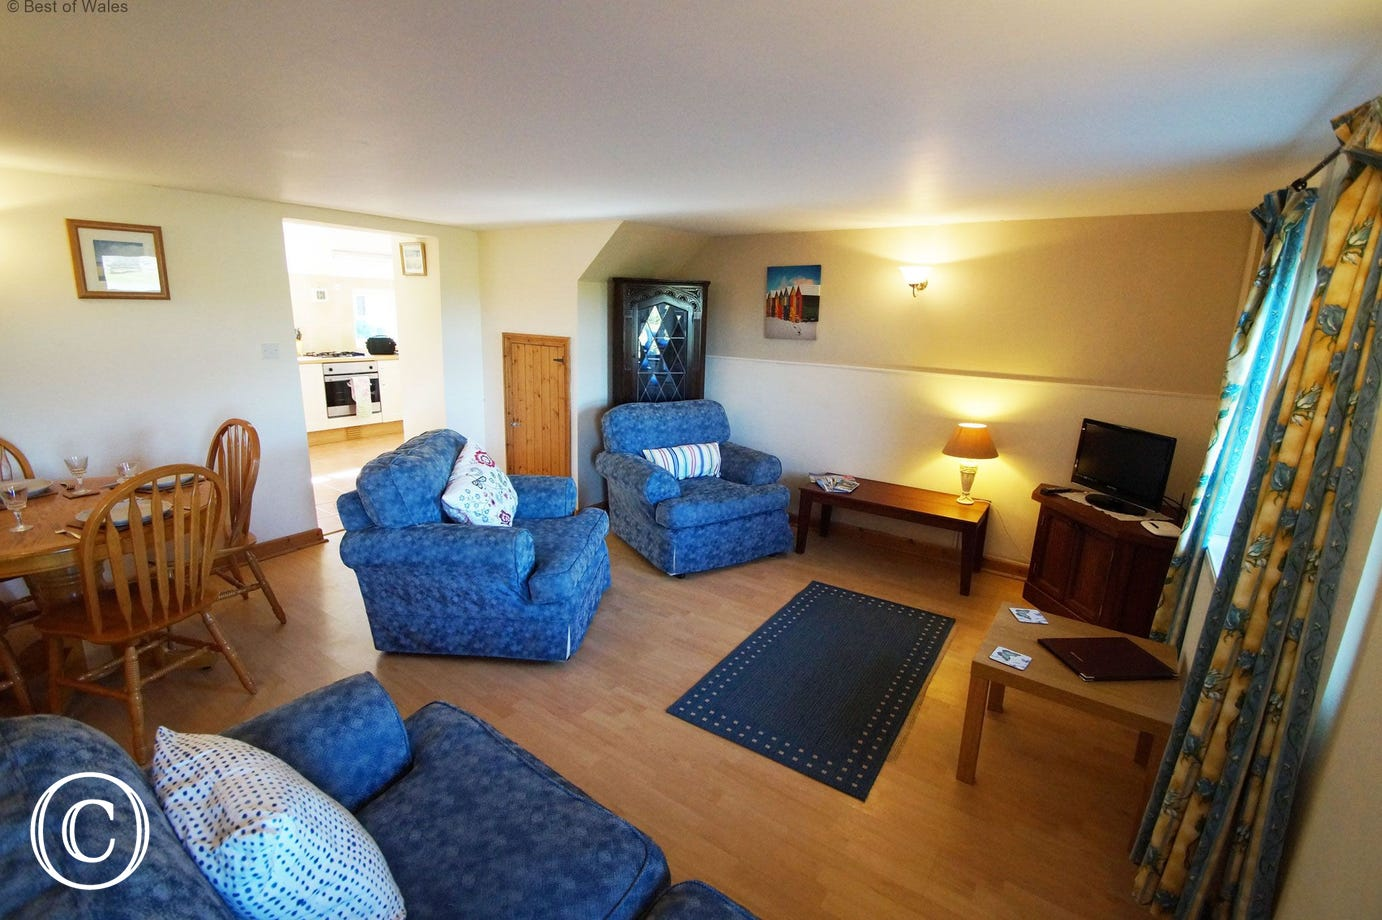 St Davids Self Catering - lounge area